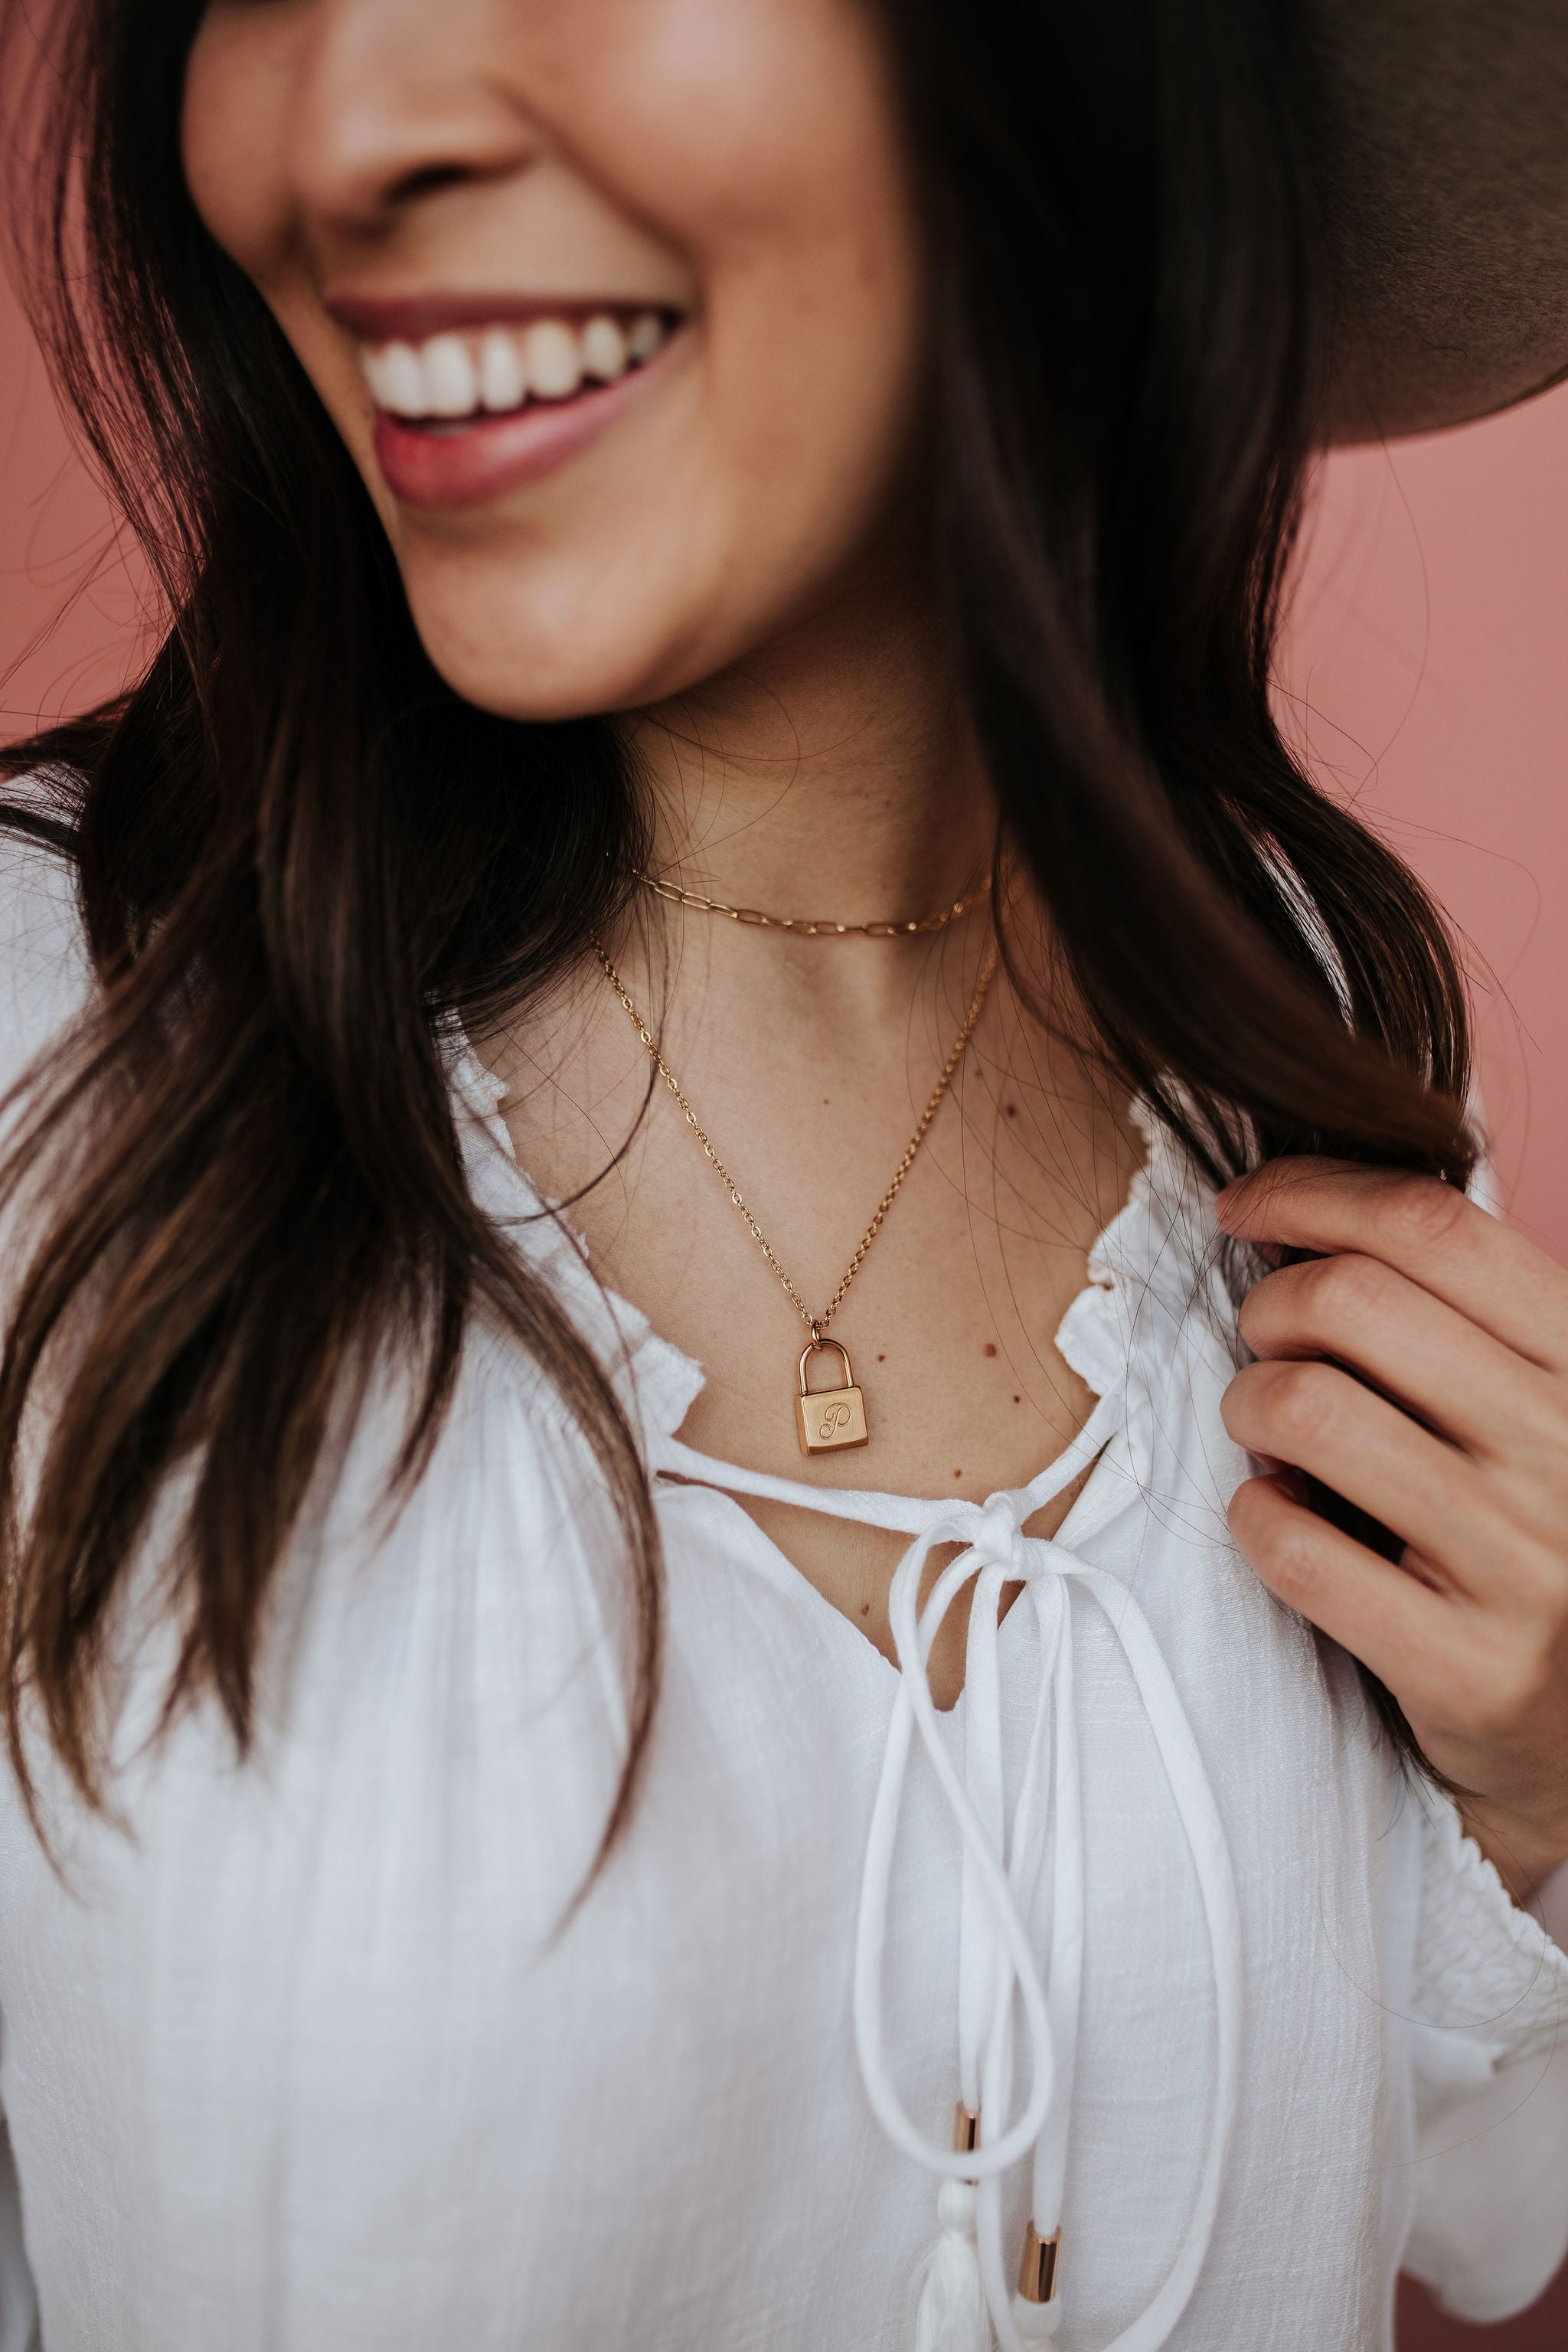 THE GOLD INITIAL LOCKET NECKLACE